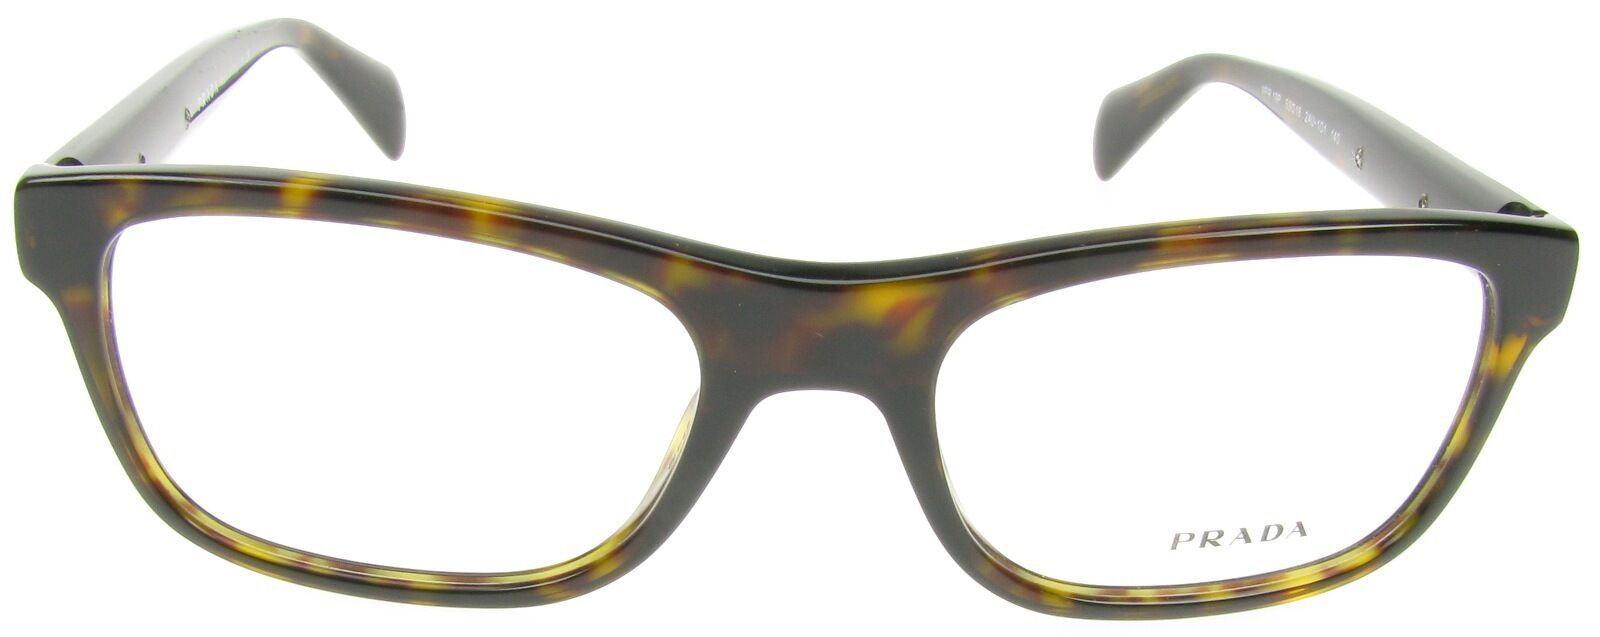 genuine prada tortoise eye reading glasses